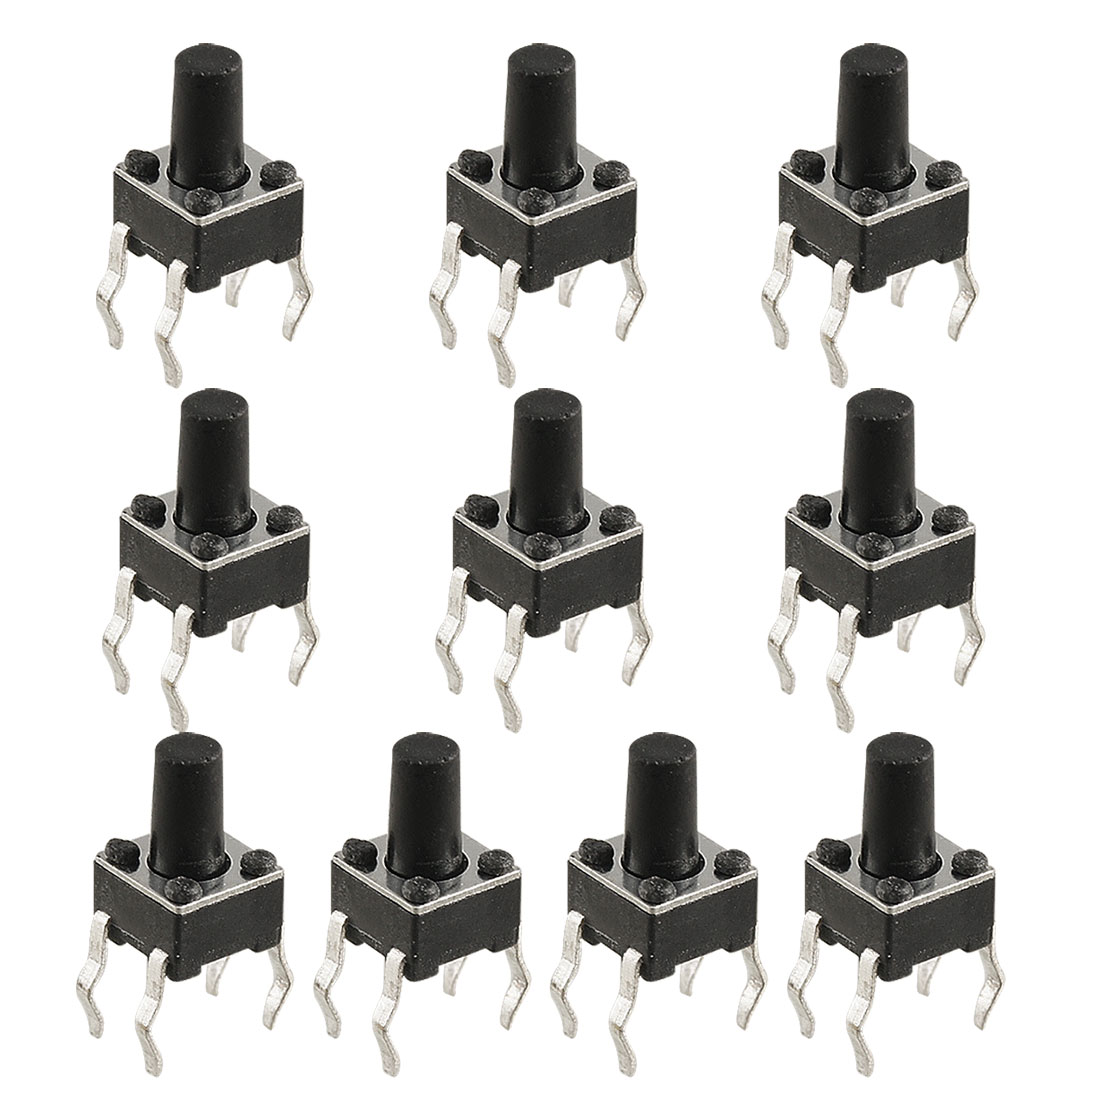 10 Pcs PCB Momentary Tactile Tact Push Button Switch 4.5 x 4.5 x 7.1mm 4 Pin DIP